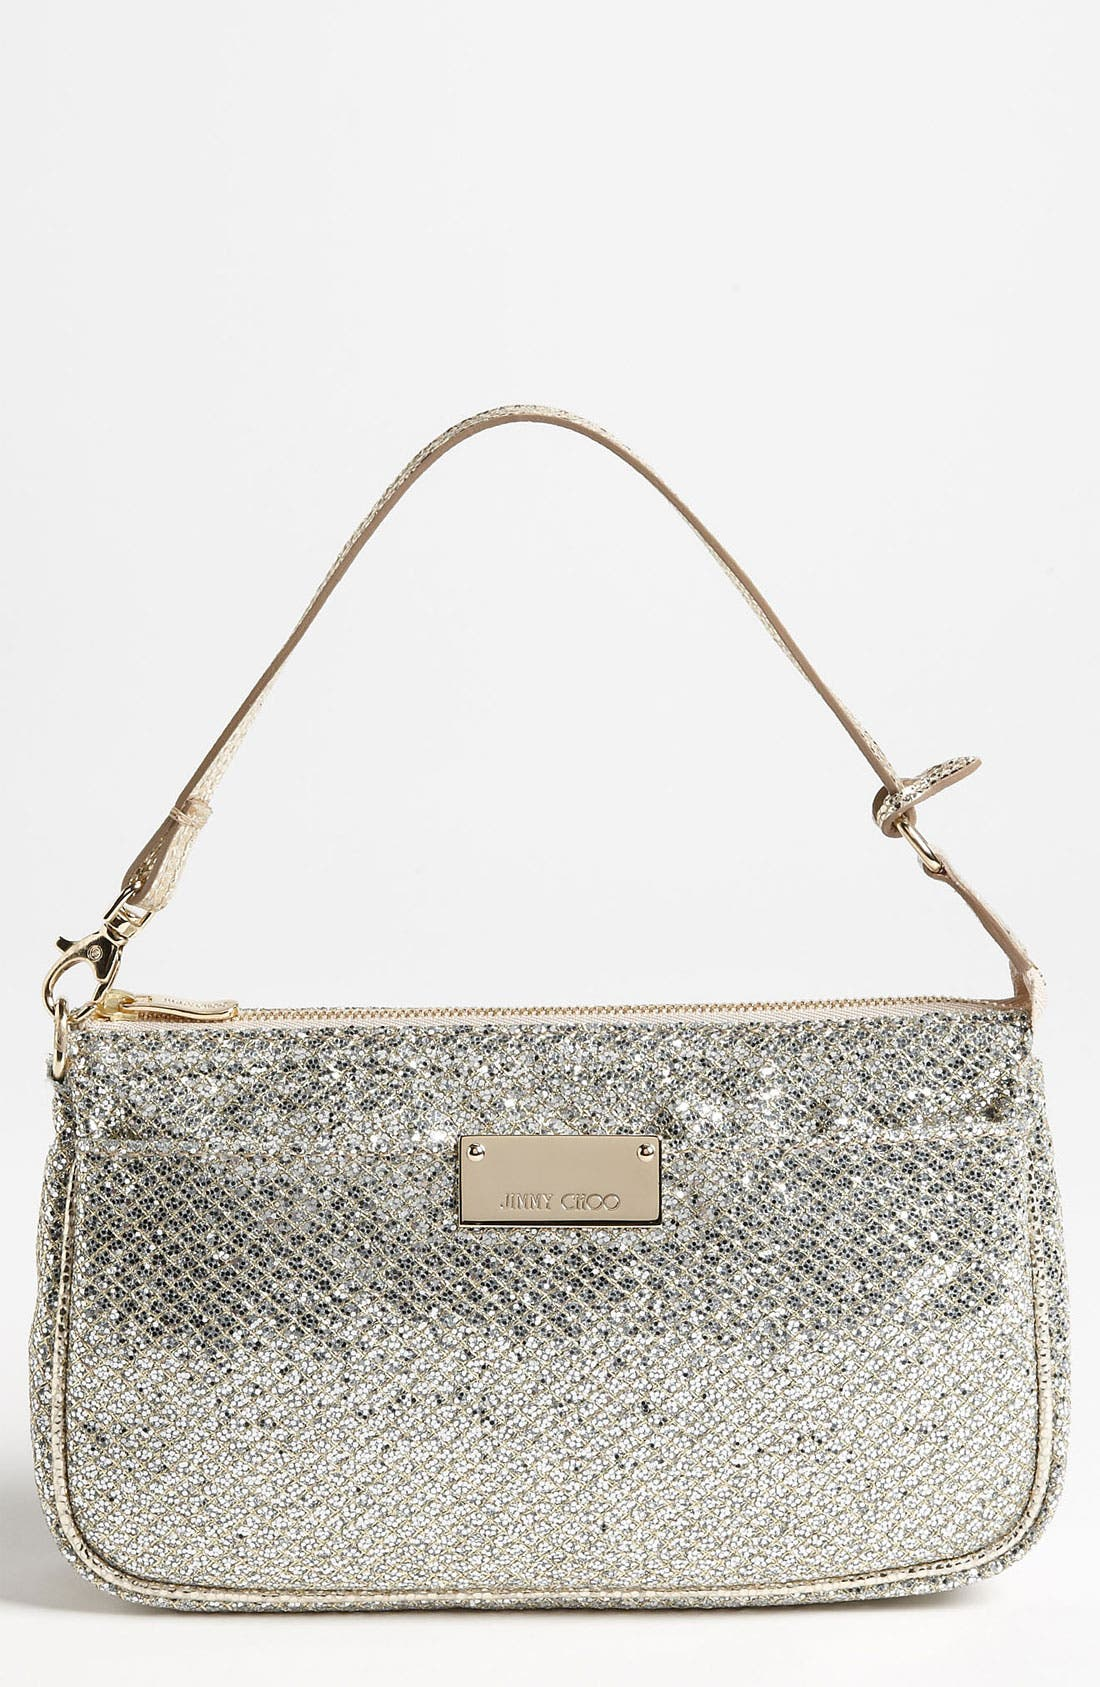 Alternate Image 1 Selected - Jimmy Choo 'Rella' Glitter Clutch